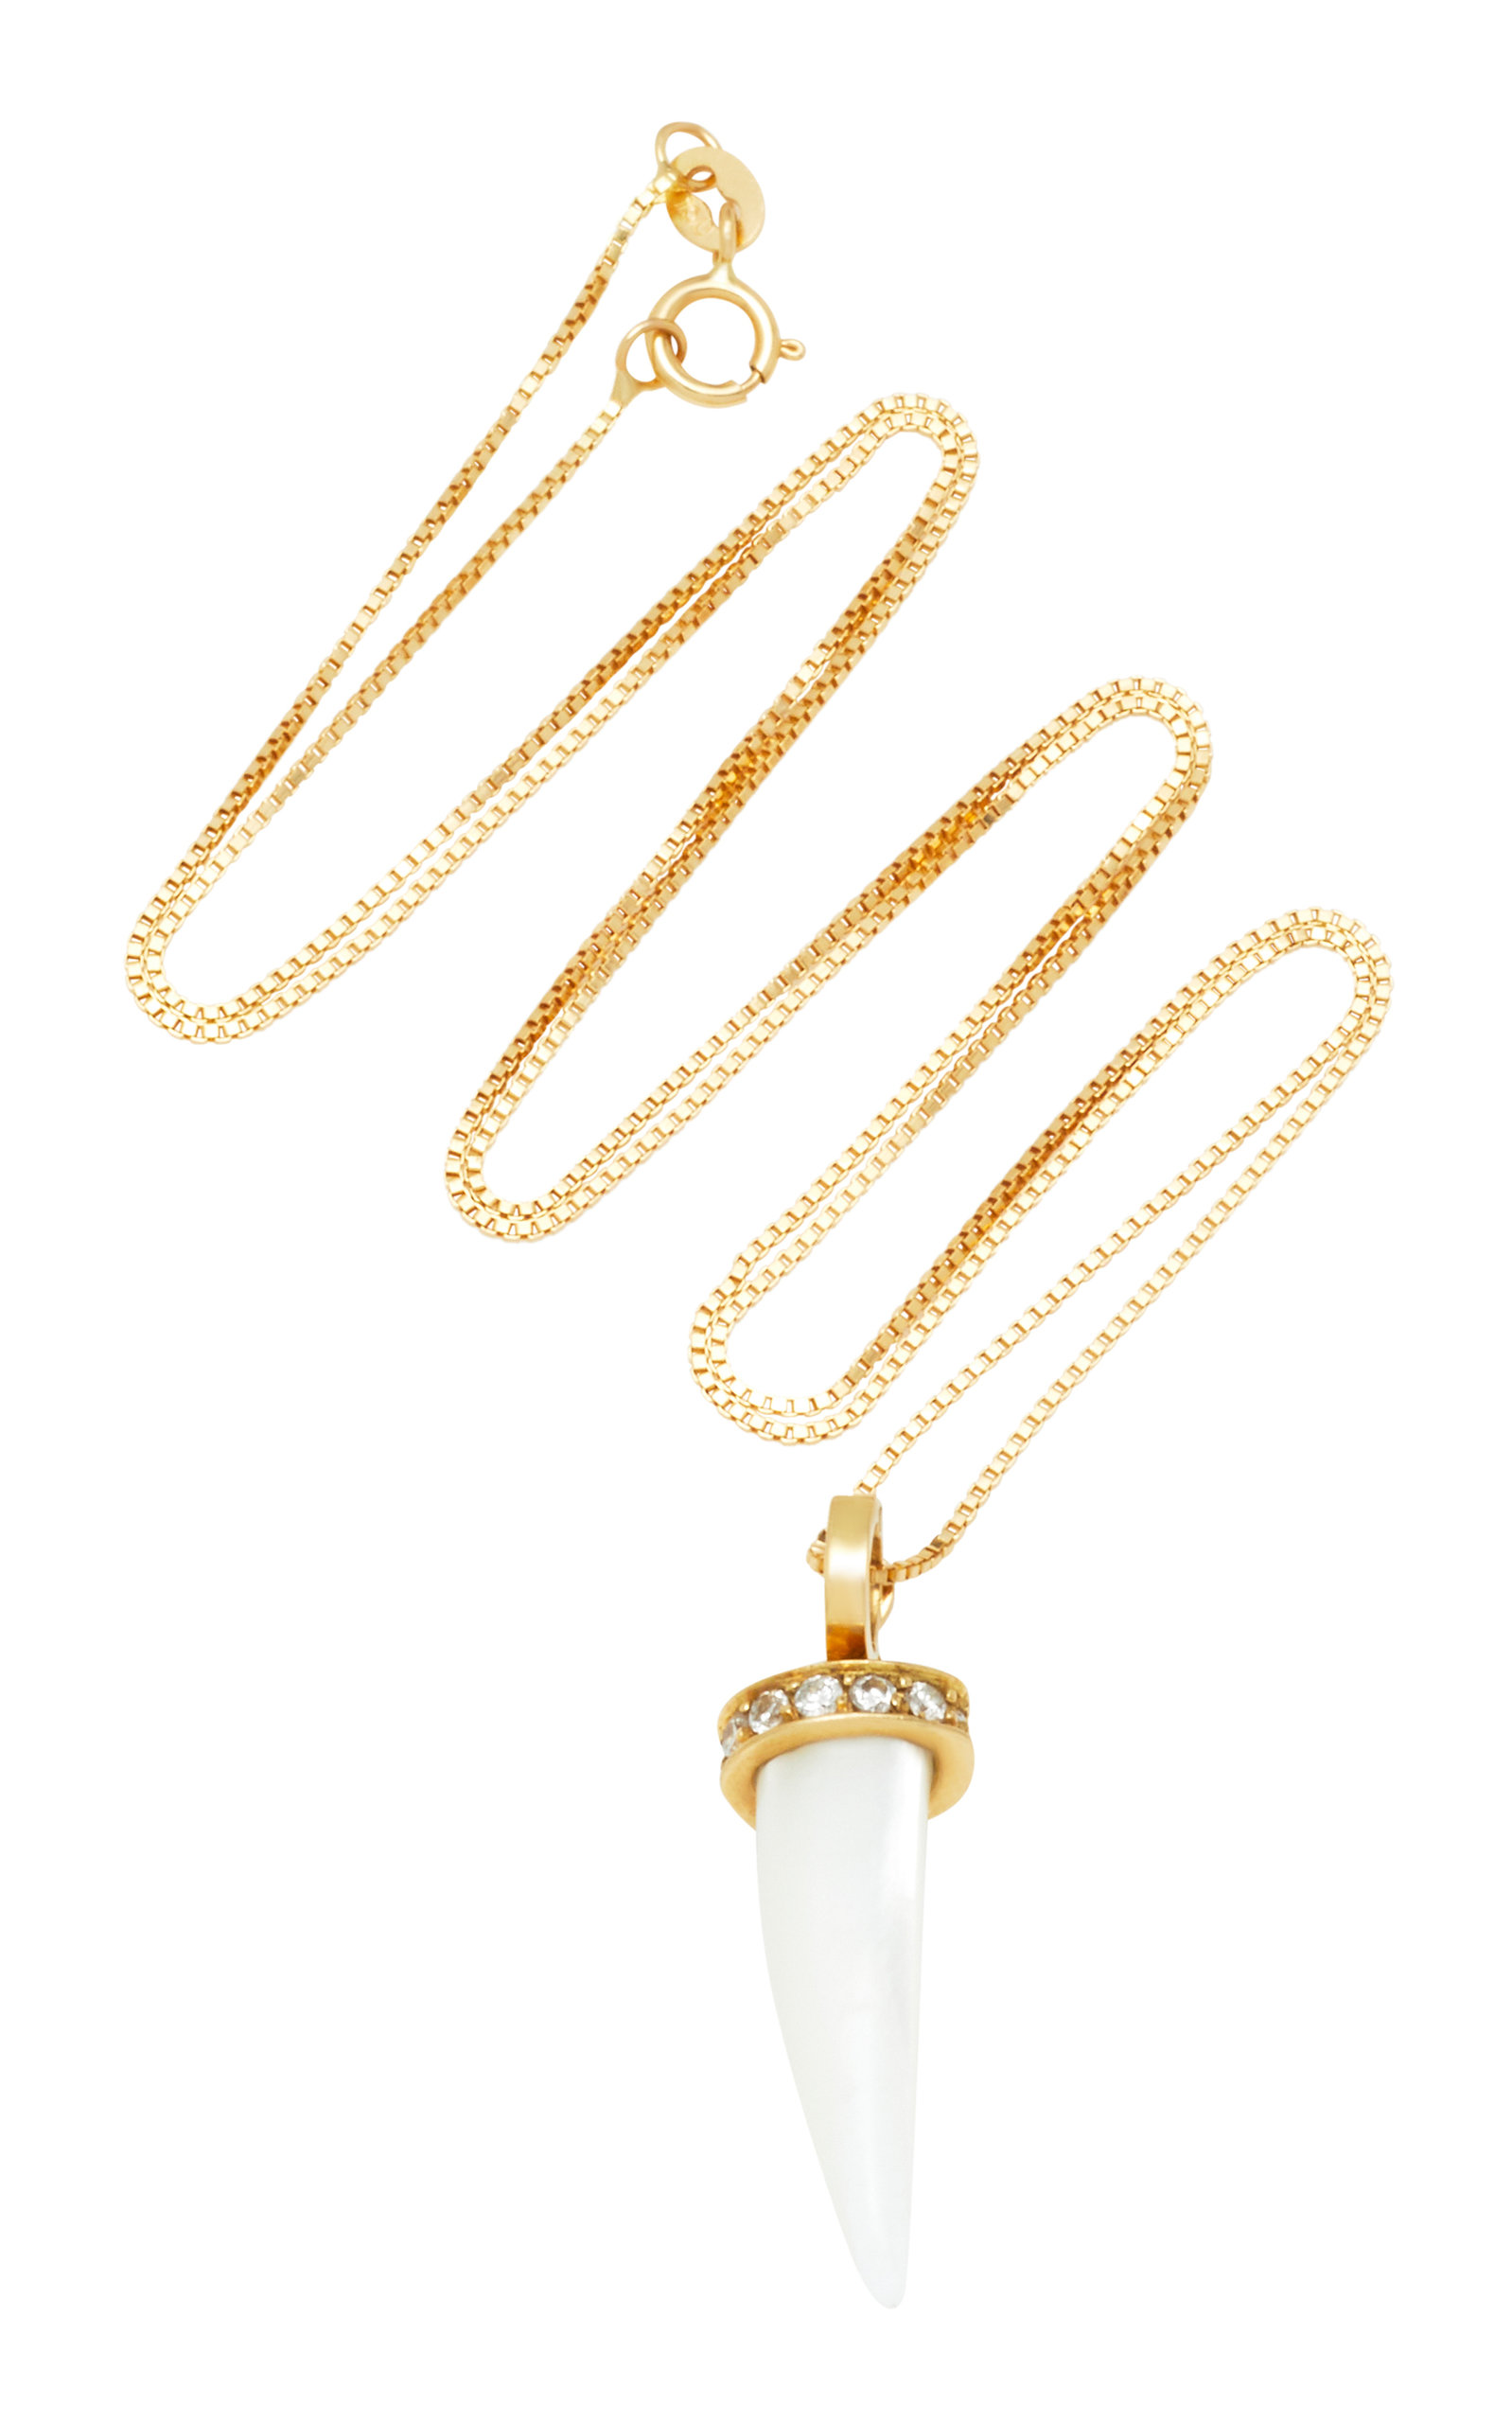 ARON & HIRSCH Mursi 18K Gold Resin And Diamond Necklace in White